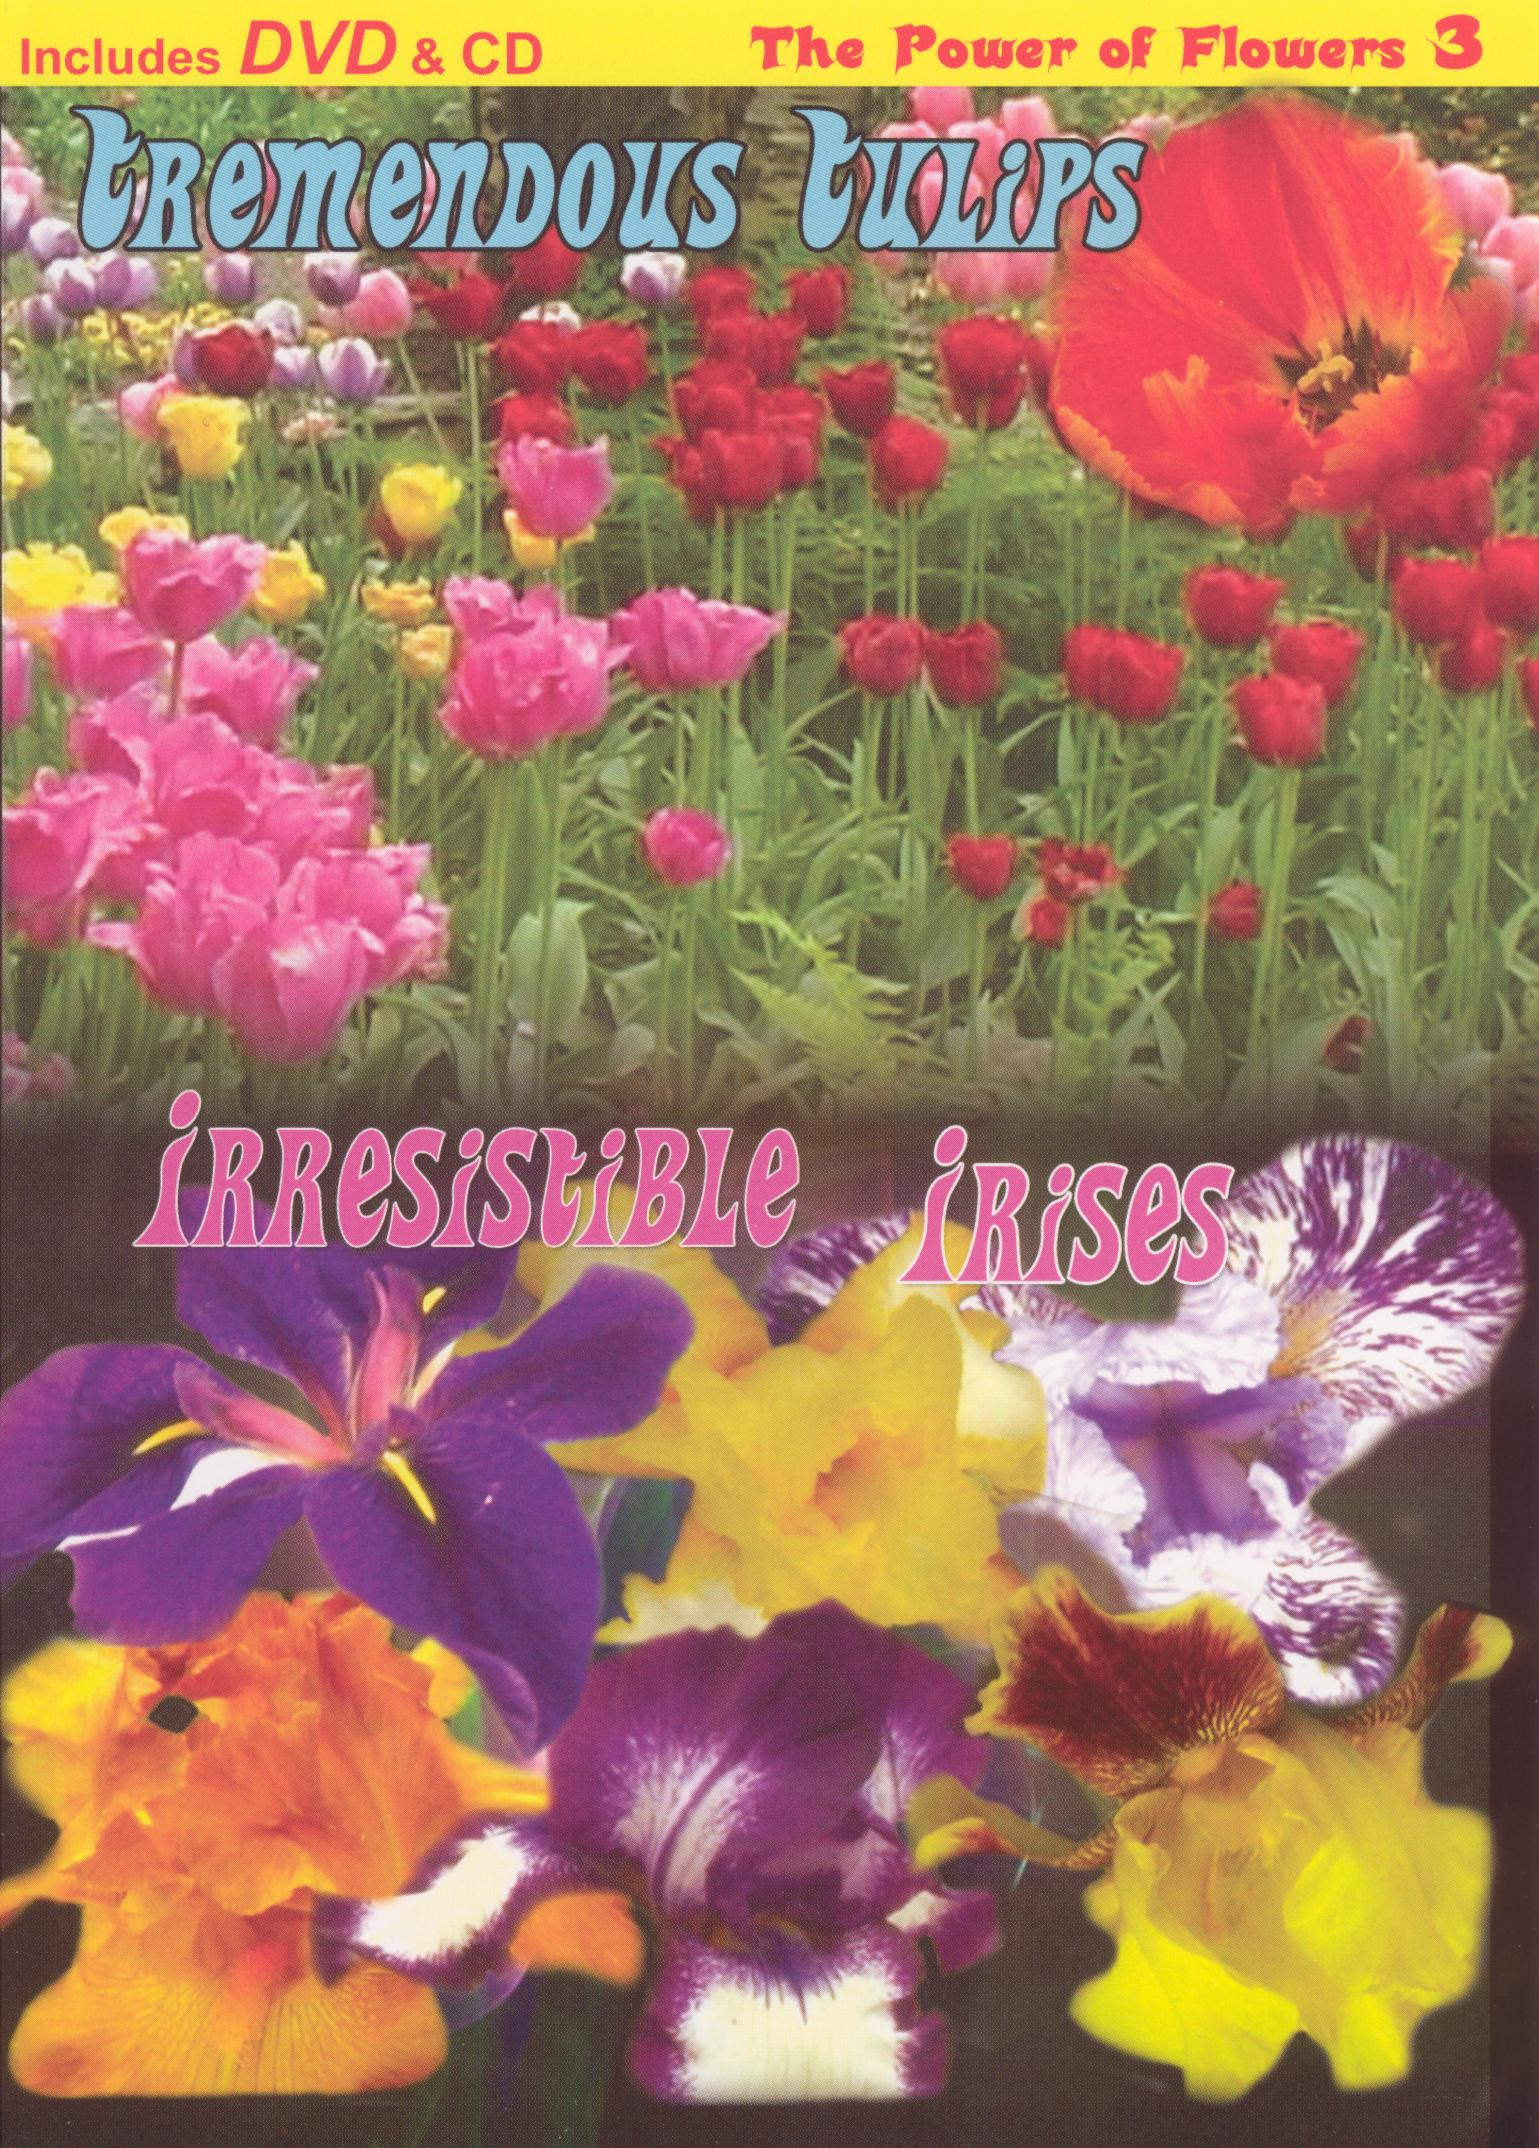 The Power of Flowers, Vol. 3: Tremendous Tulips and Irresistible Irises